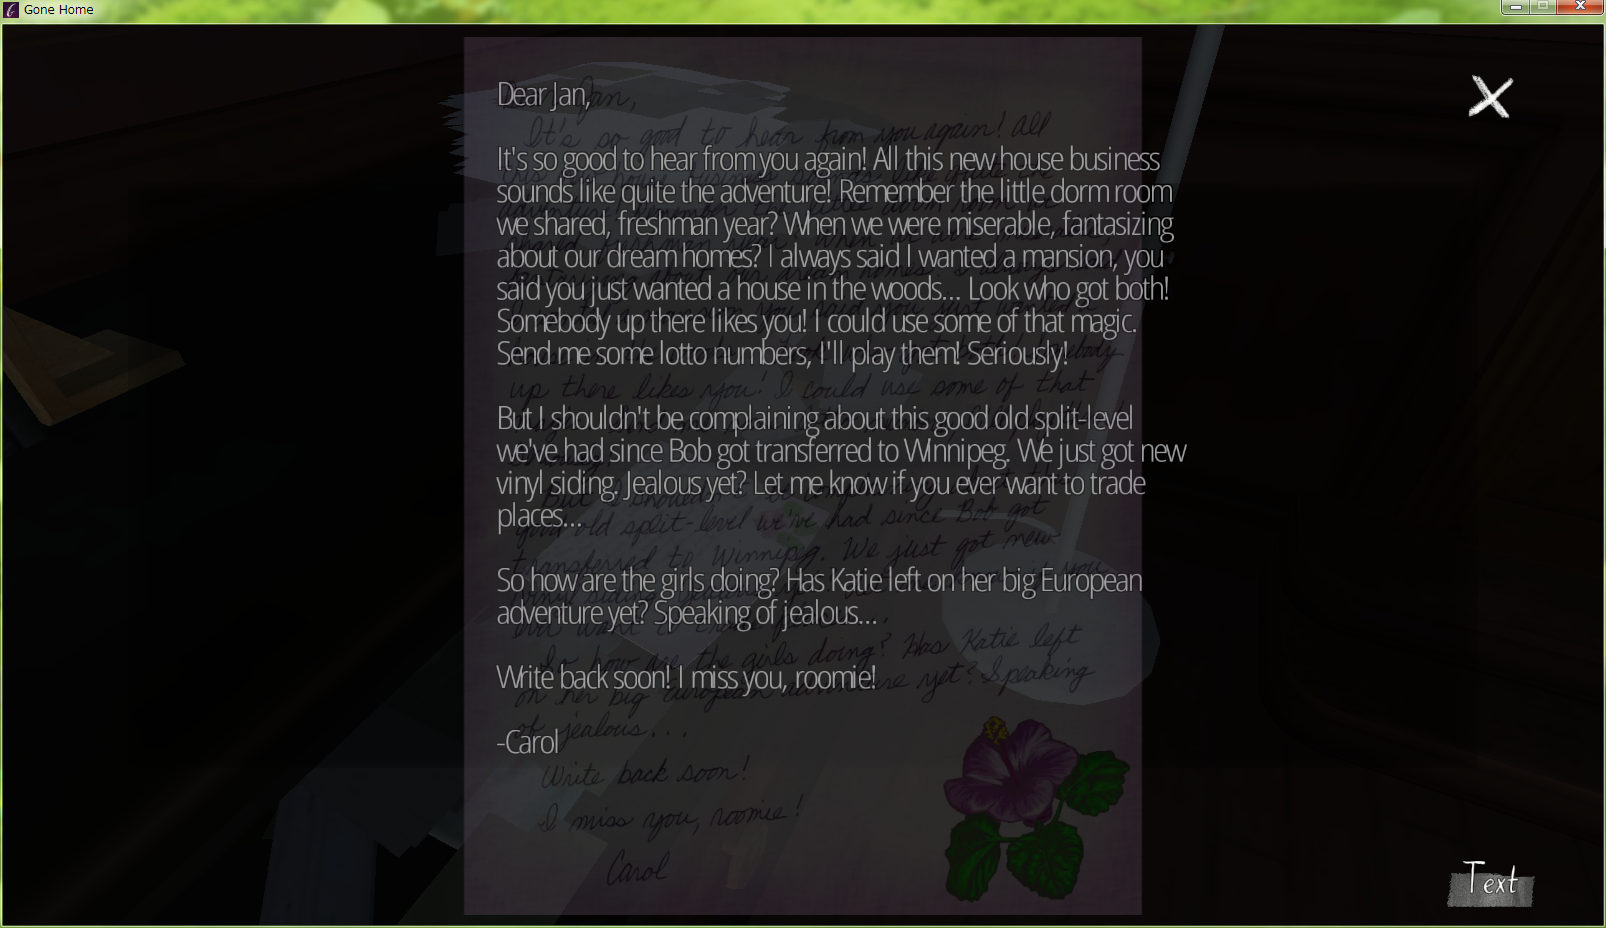 gonehome (1)